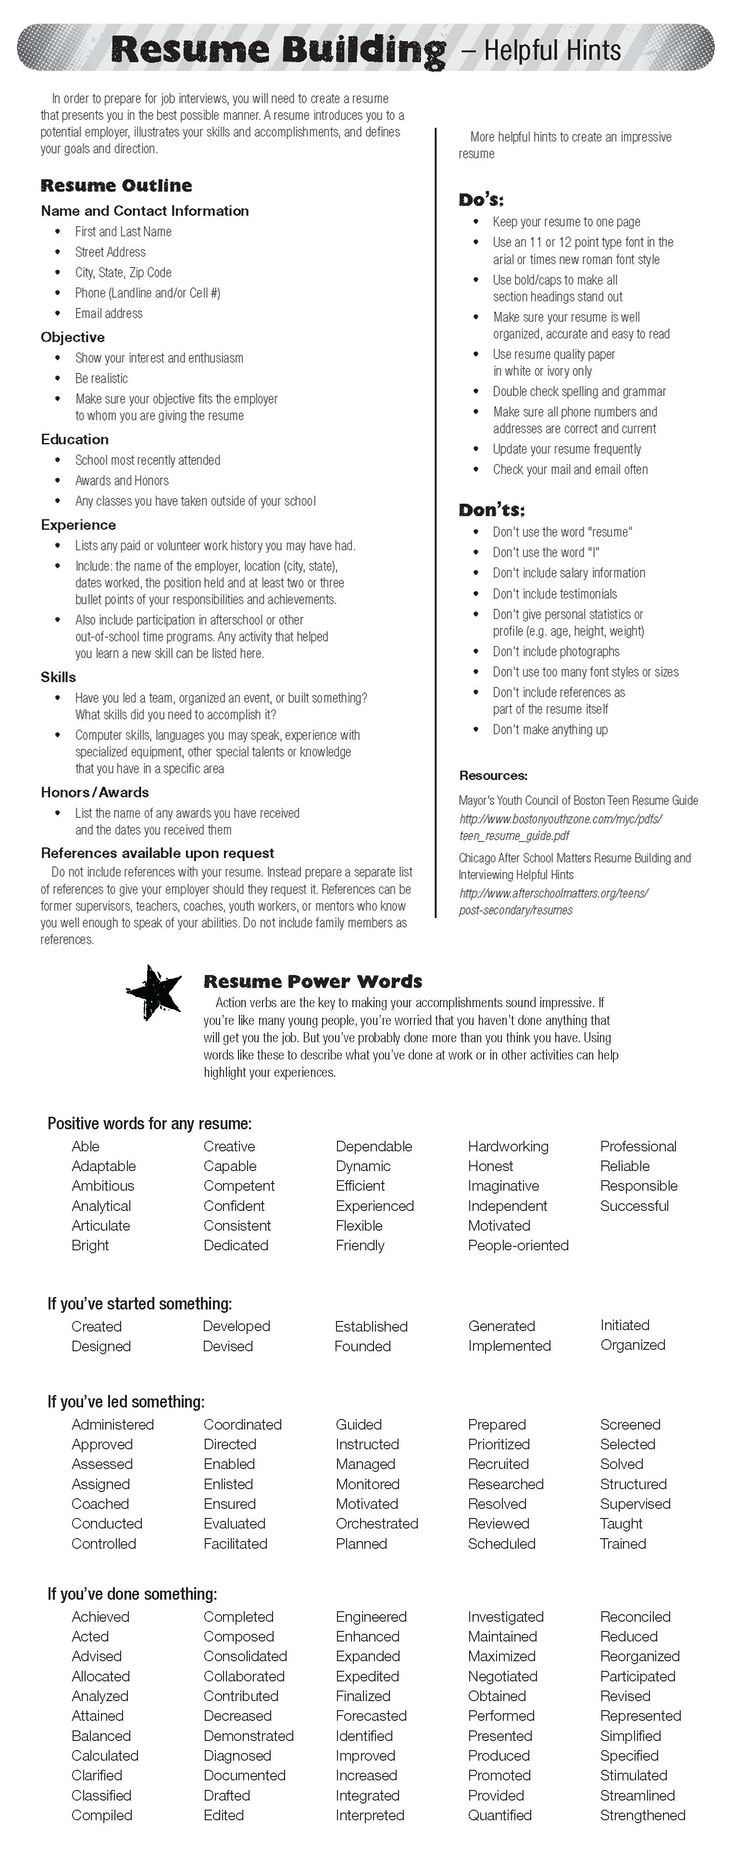 Opposenewapstandardsus  Unusual  Ideas About Resume On Pinterest  Cv Format Resume Cv And  With Entrancing  Ideas About Resume On Pinterest  Cv Format Resume Cv And Resume Templates With Beauteous Resume For A Highschool Student Also Objectives For Resume Examples In Addition Hr Resumes And Medical Billing And Coding Resume As Well As Descriptive Words For Resume Additionally Project Manager Sample Resume From Pinterestcom With Opposenewapstandardsus  Entrancing  Ideas About Resume On Pinterest  Cv Format Resume Cv And  With Beauteous  Ideas About Resume On Pinterest  Cv Format Resume Cv And Resume Templates And Unusual Resume For A Highschool Student Also Objectives For Resume Examples In Addition Hr Resumes From Pinterestcom